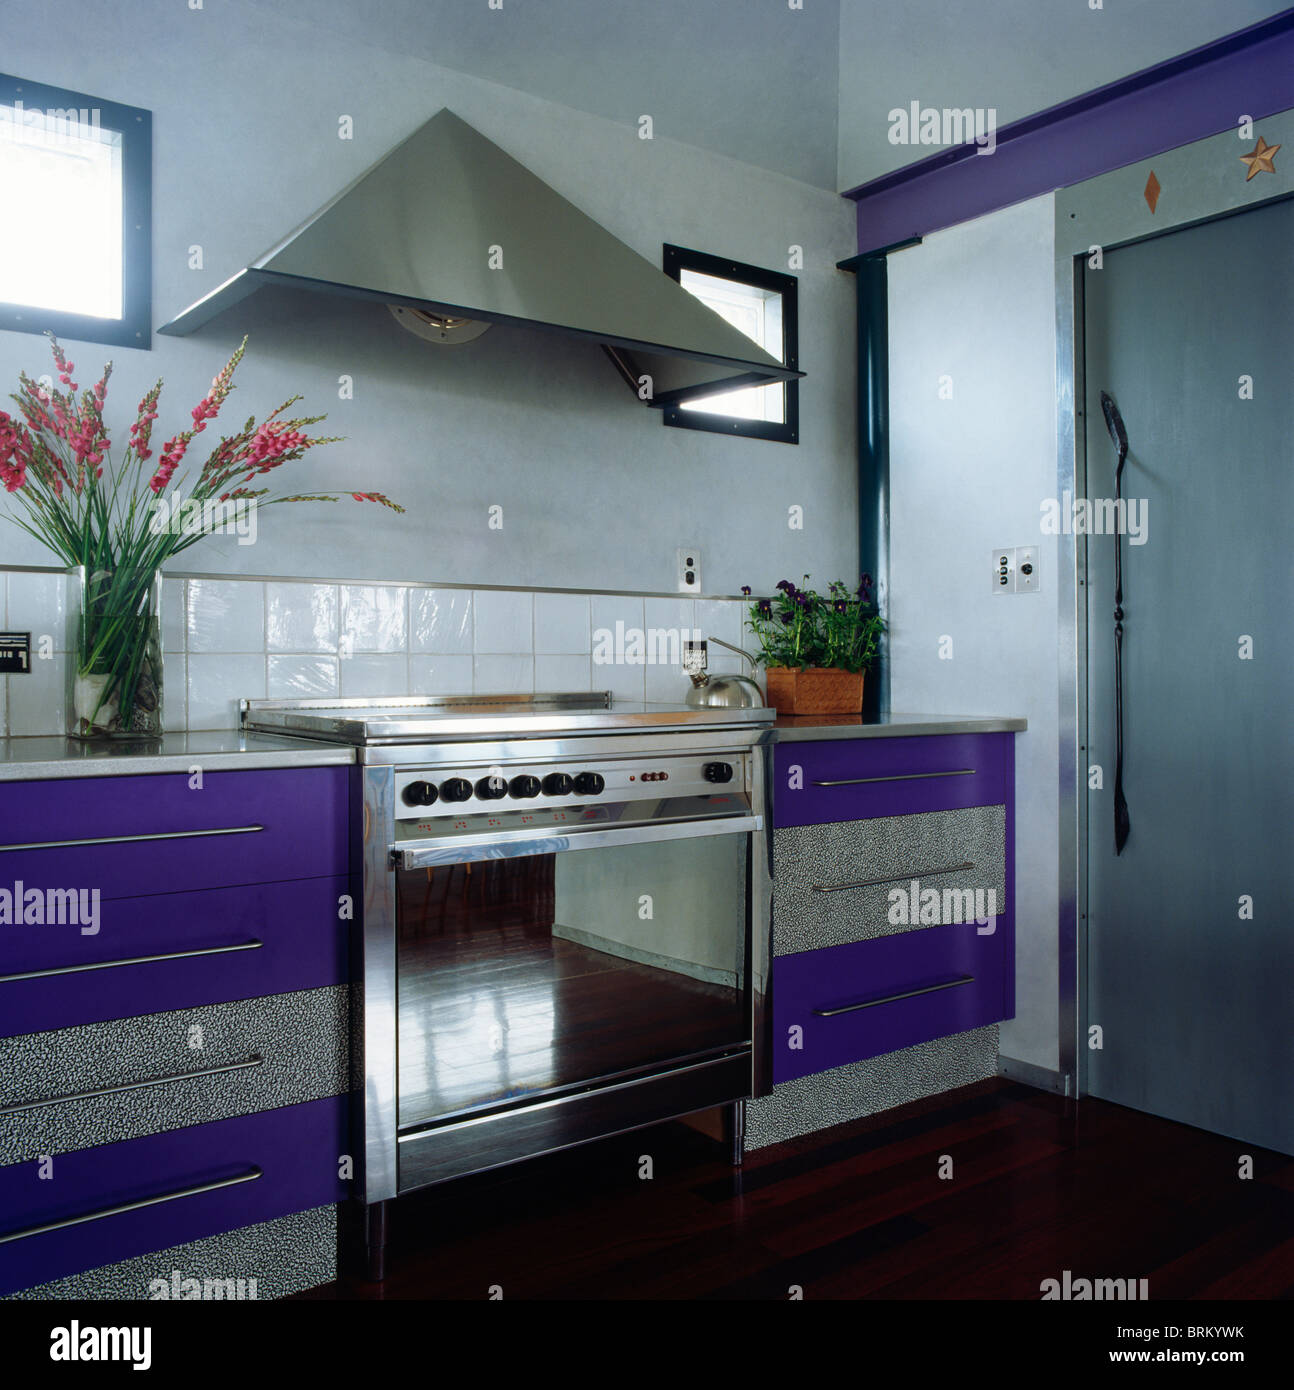 Stainless steel extractor and range oven in modern kitchen with ...